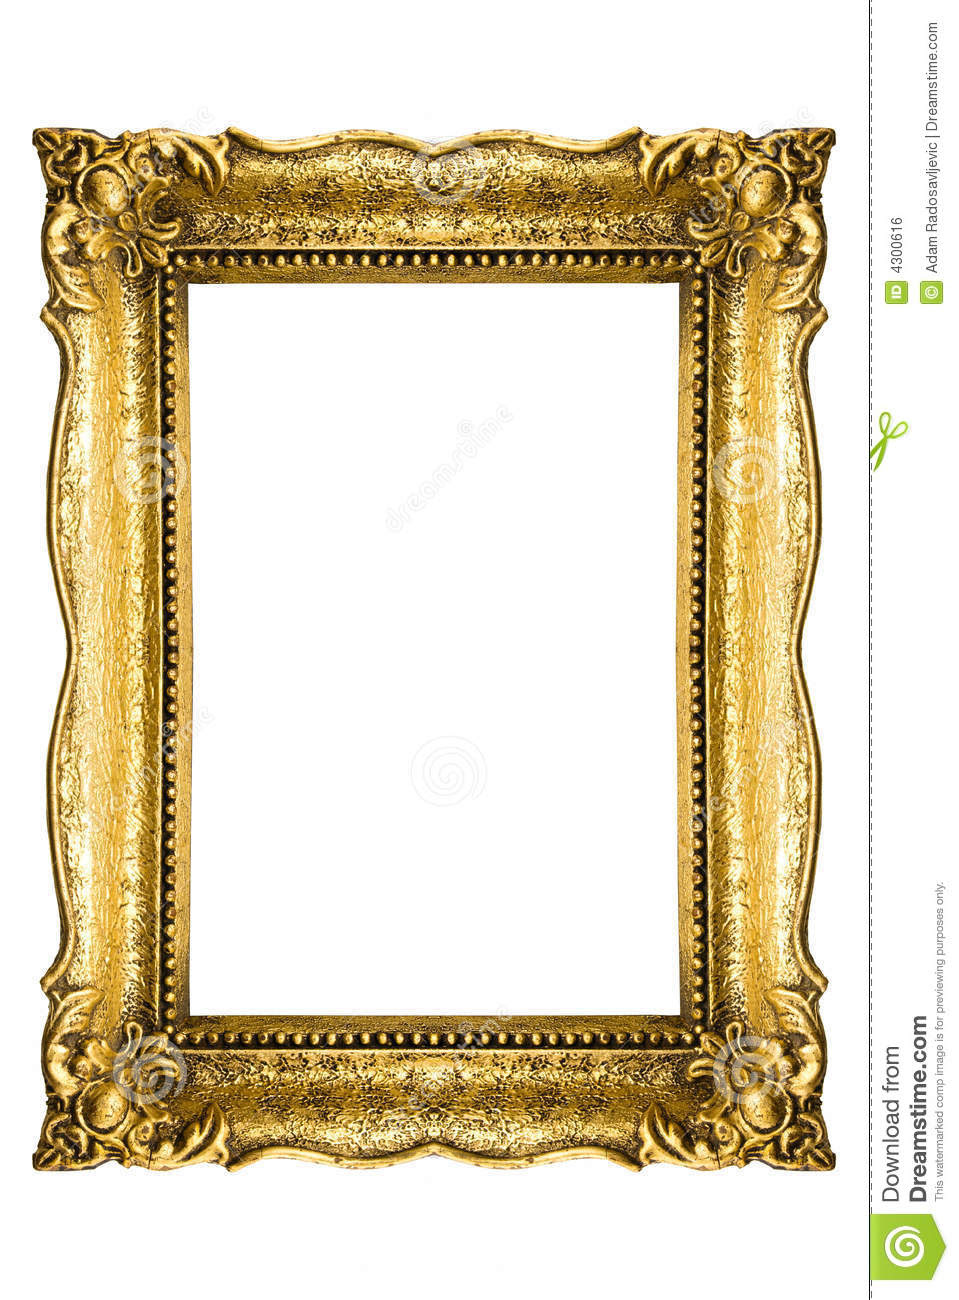 Vintage Picture Frame Royalty Free Stock Image - Image ...